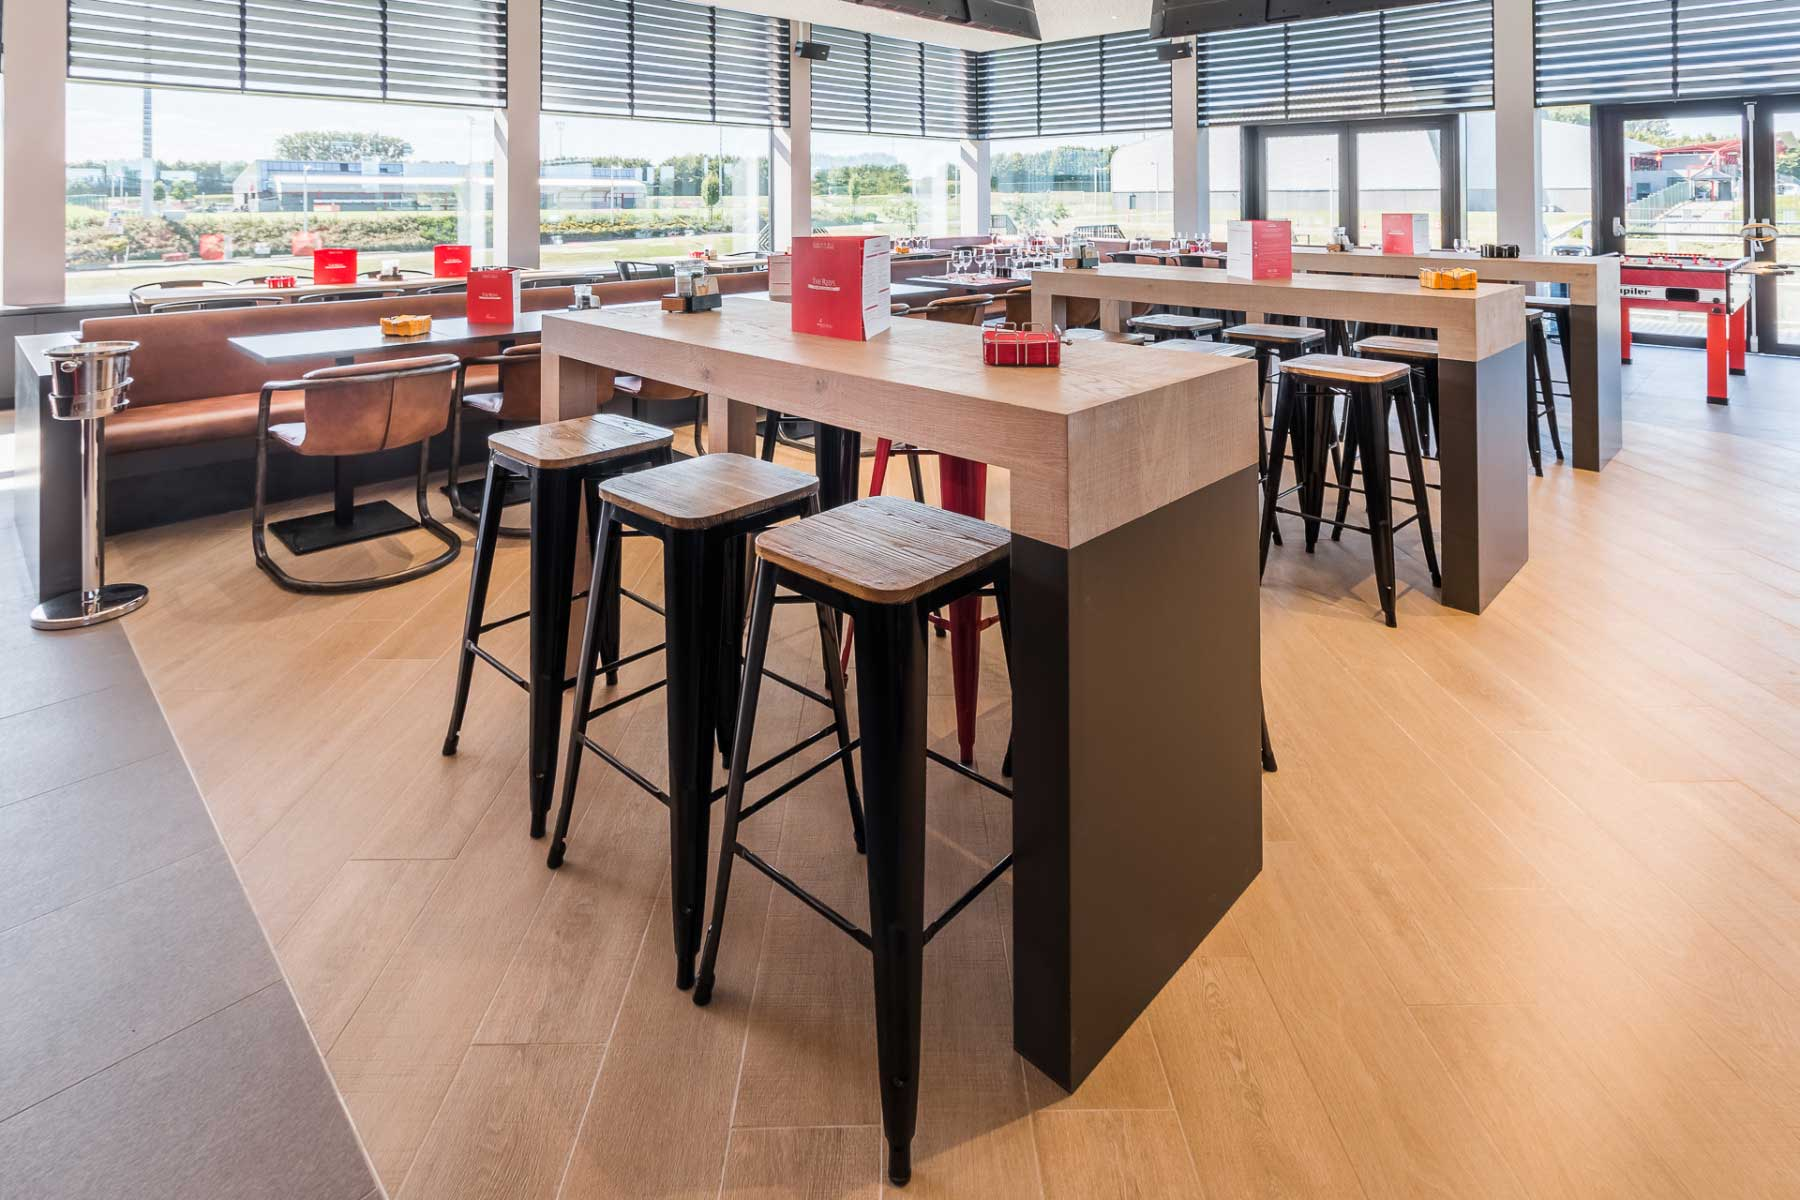 Martin's Red sport bar grill